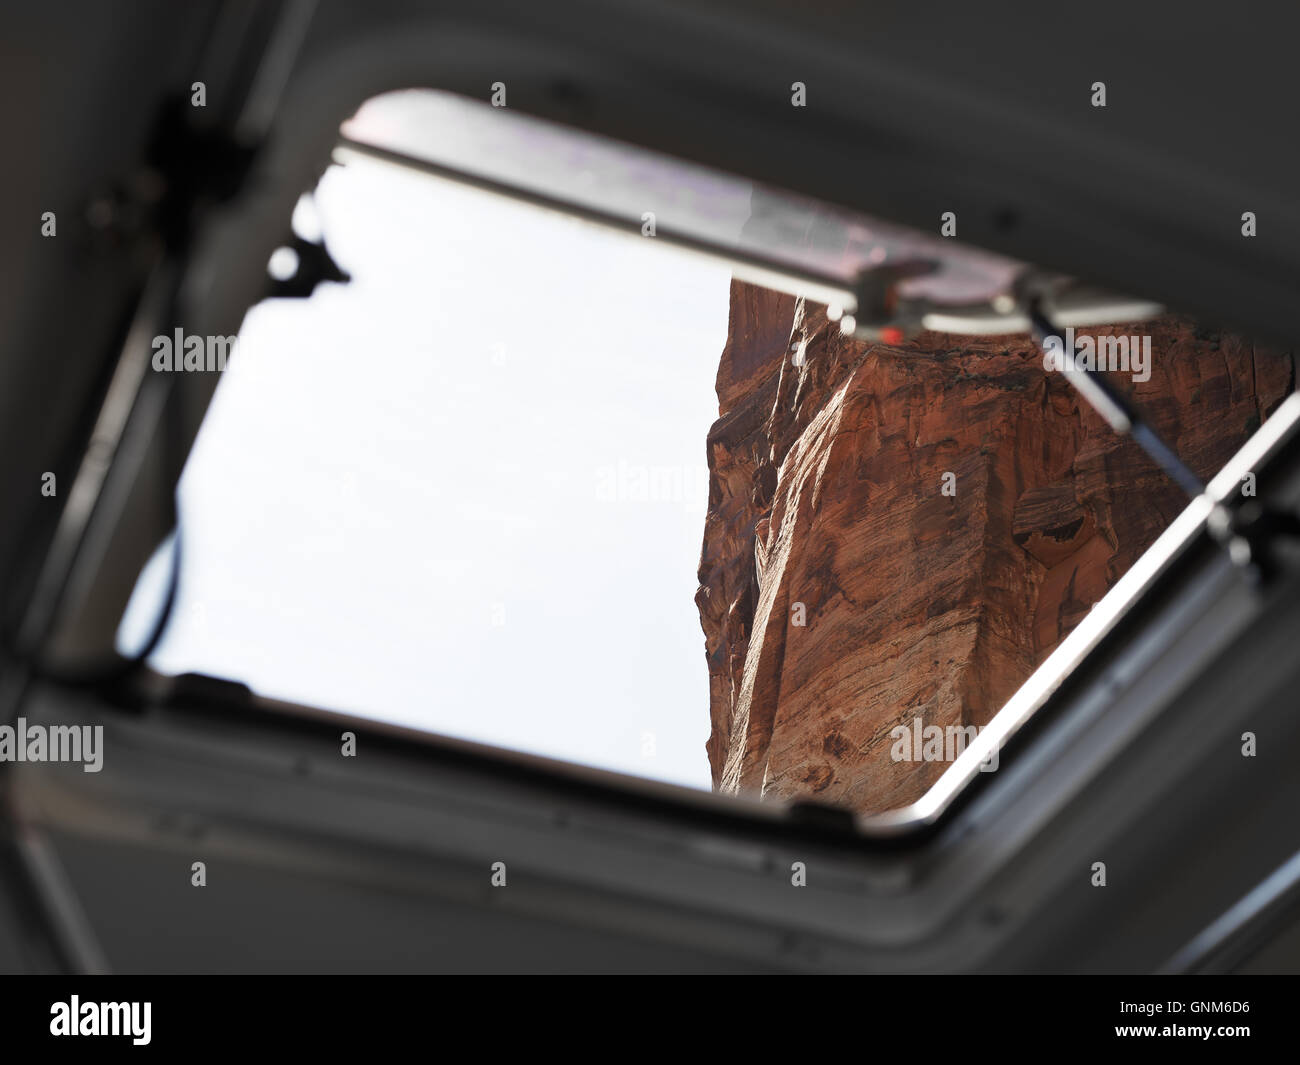 Looking out of a bus in Zion National Park - Stock Image